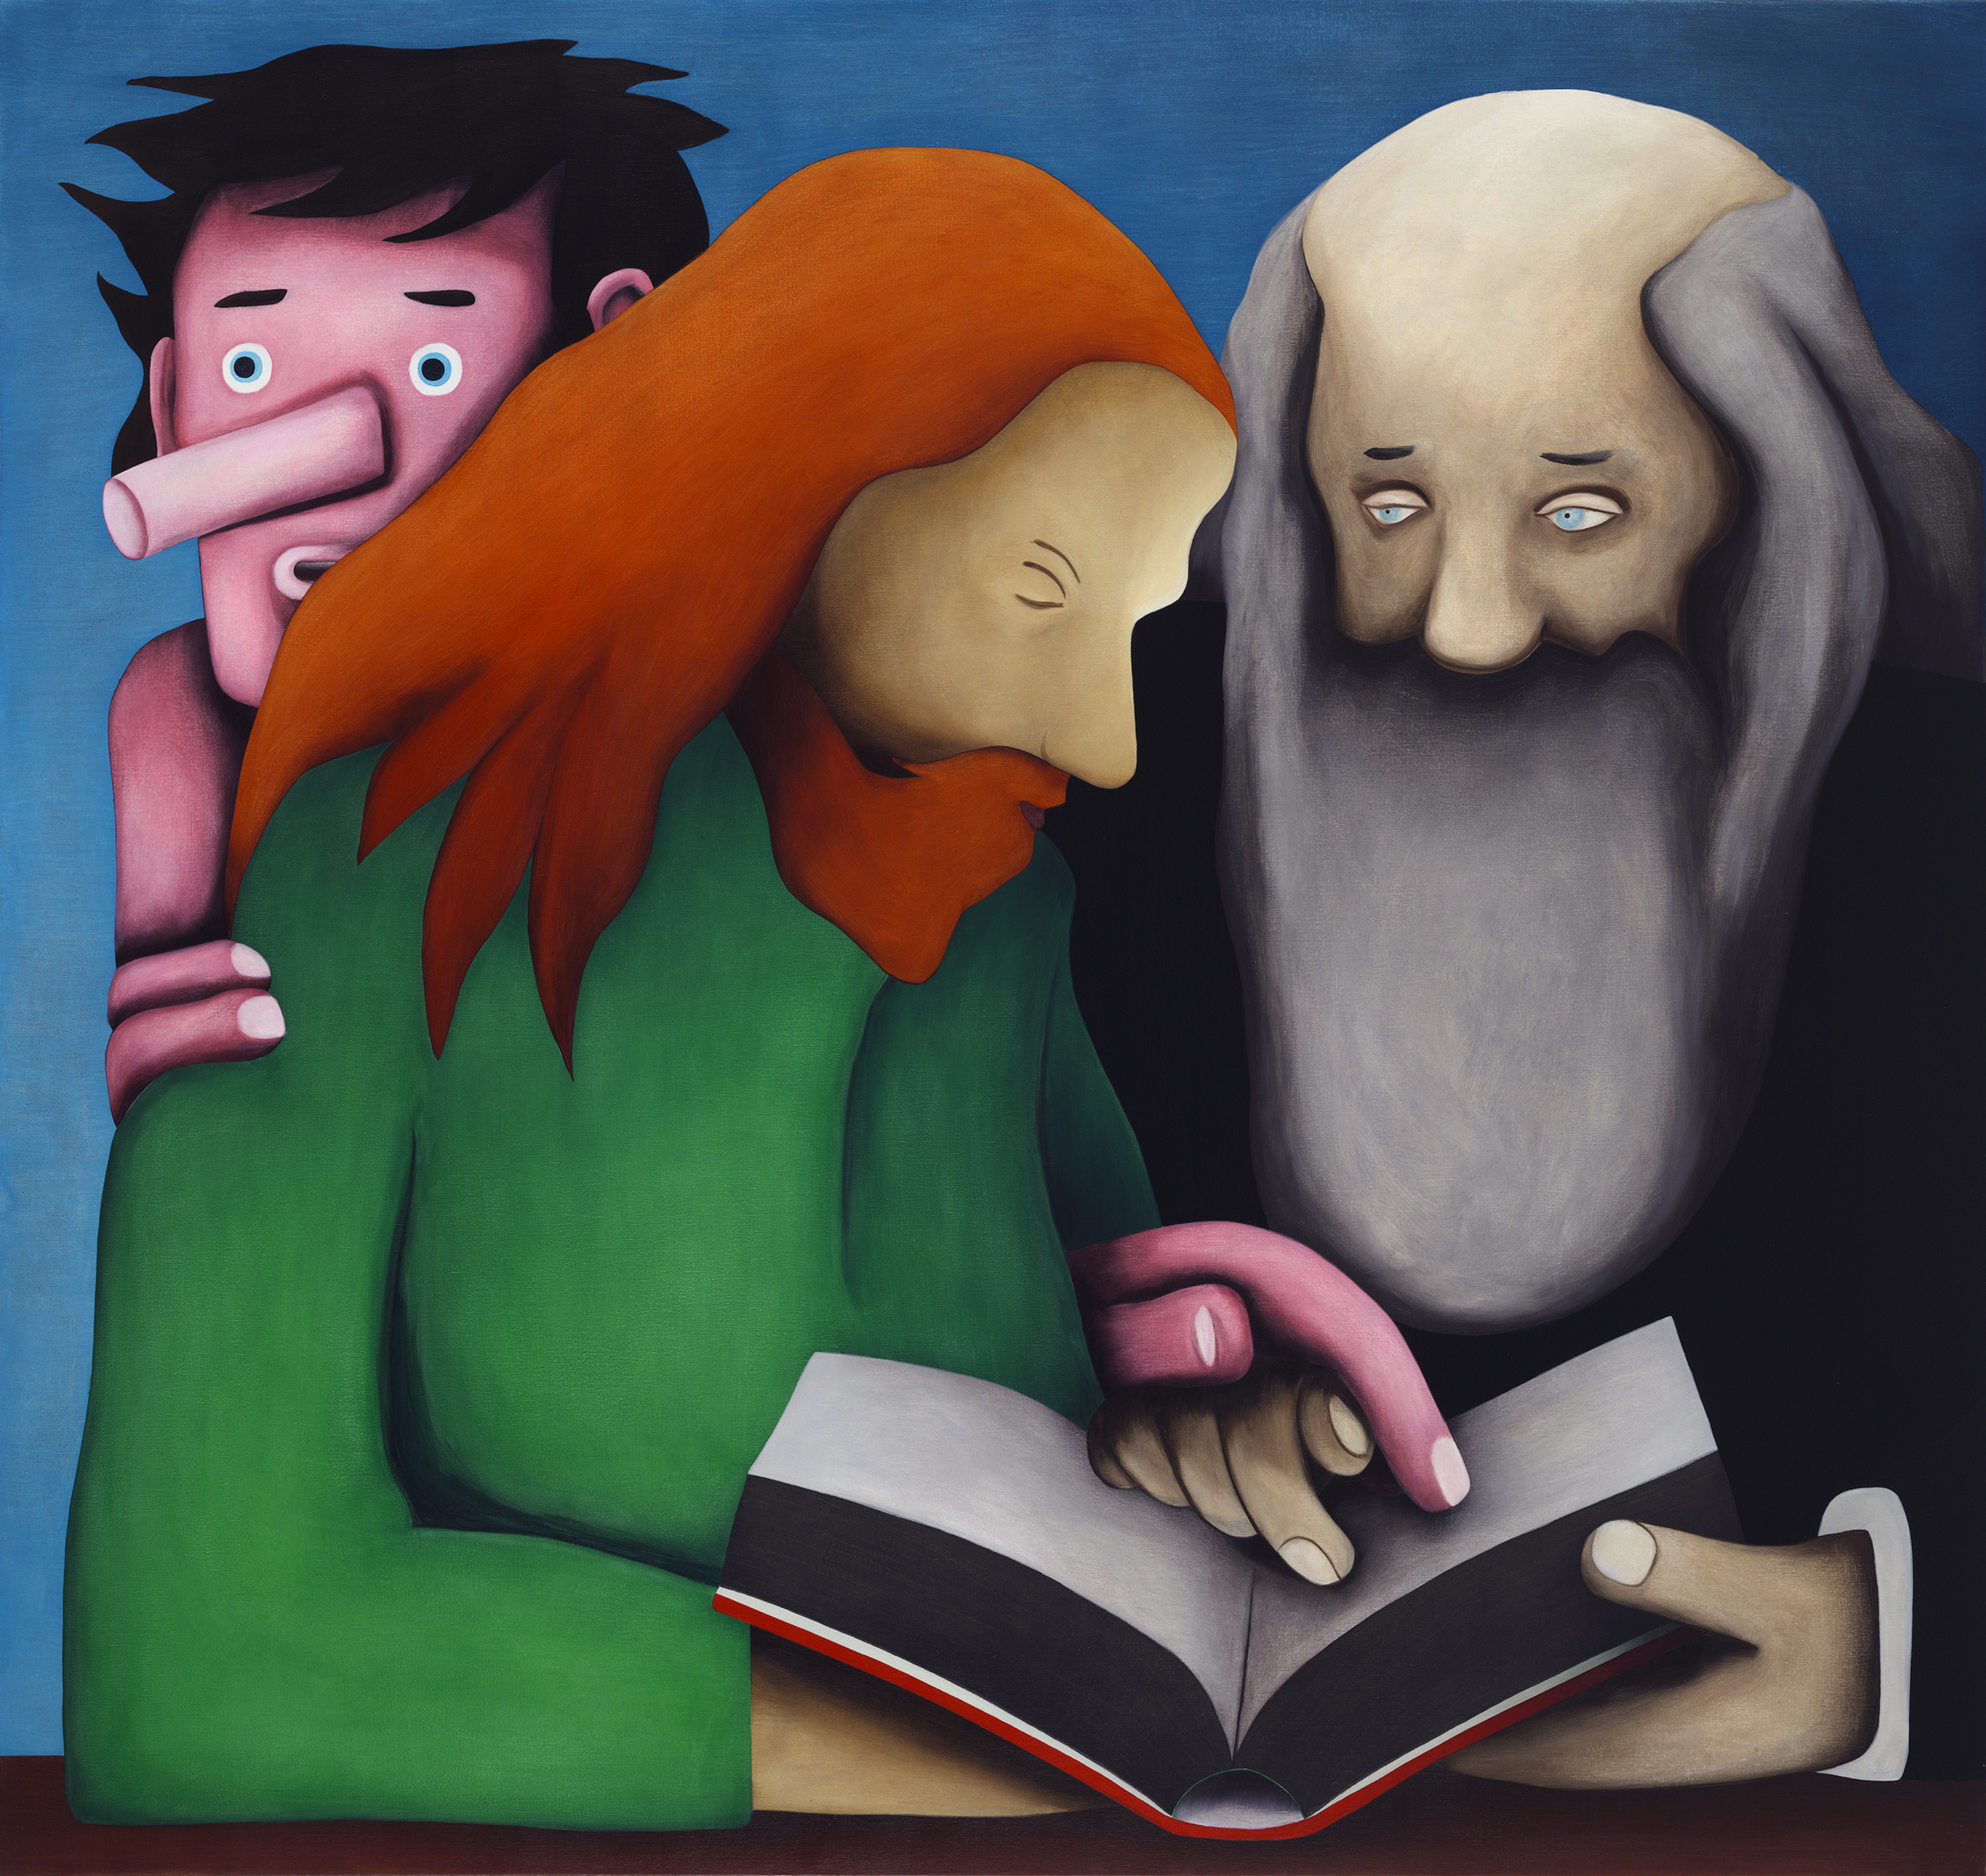 The Book, painting by Wouter van Riessen